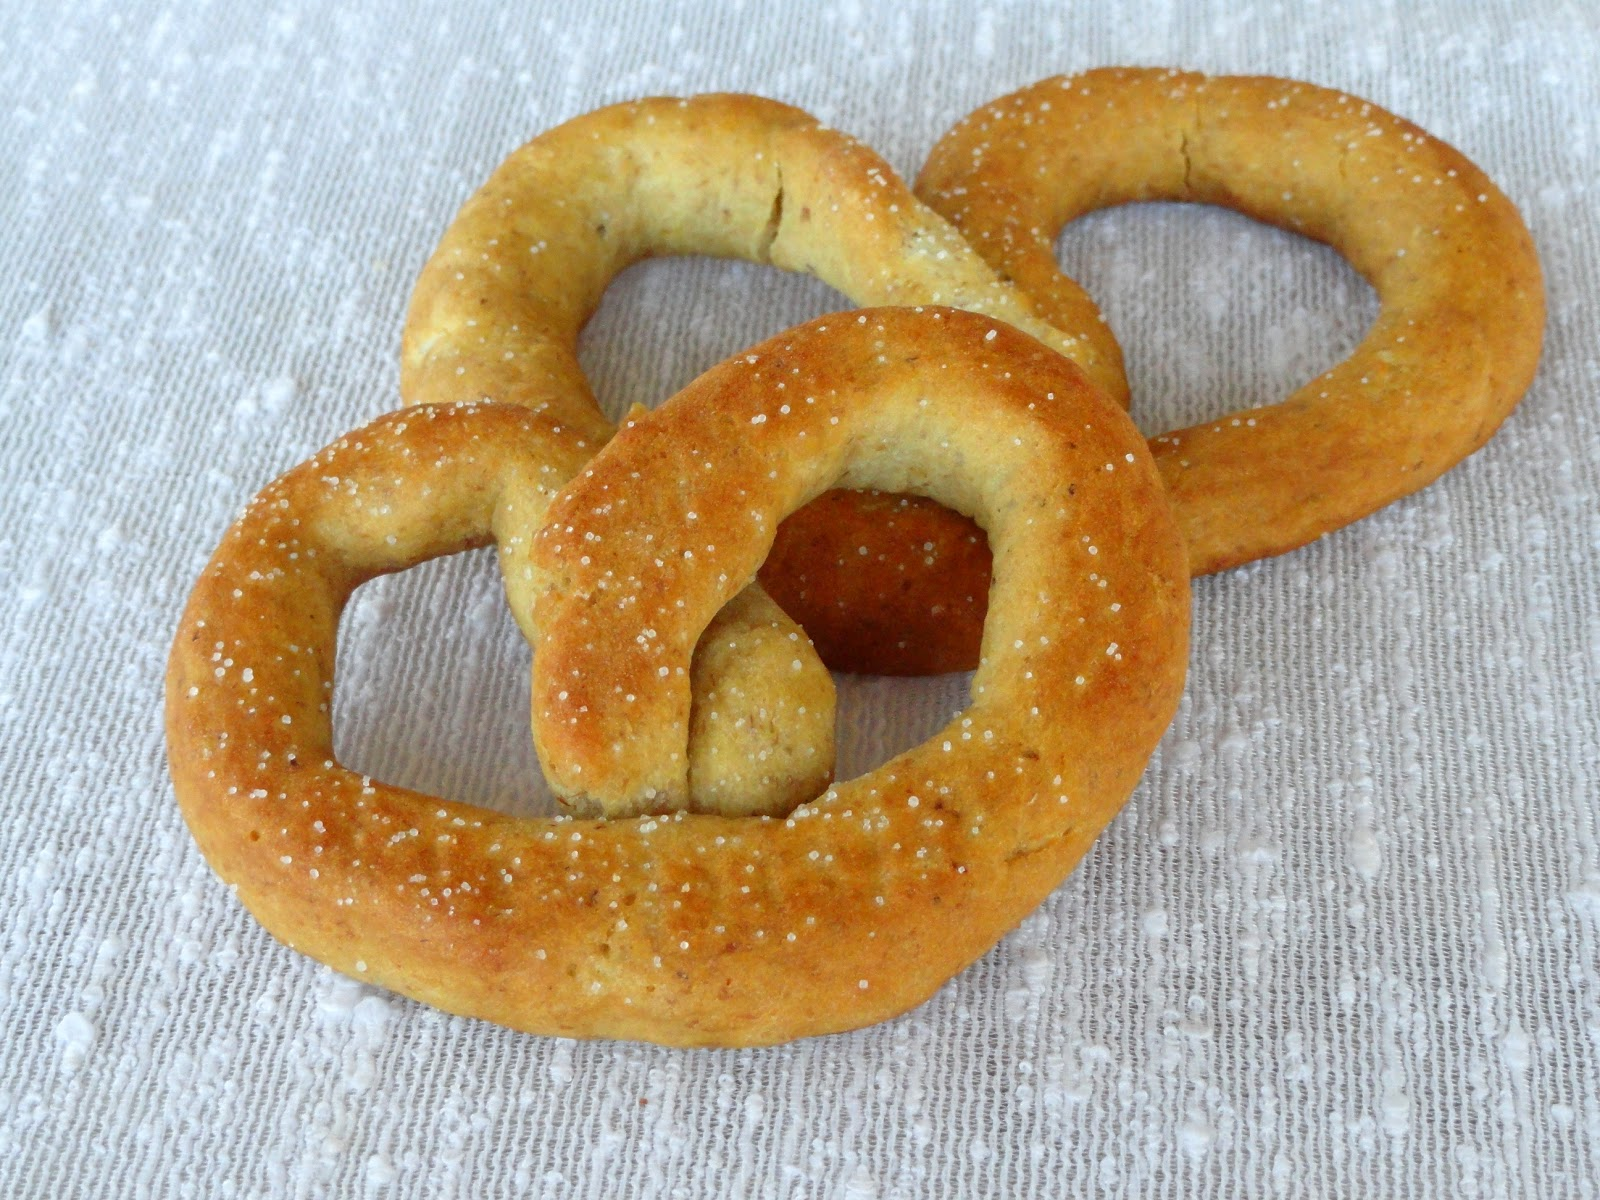 As Good As Gluten: Gluten Free Soft Pretzels and Pretzel Bites